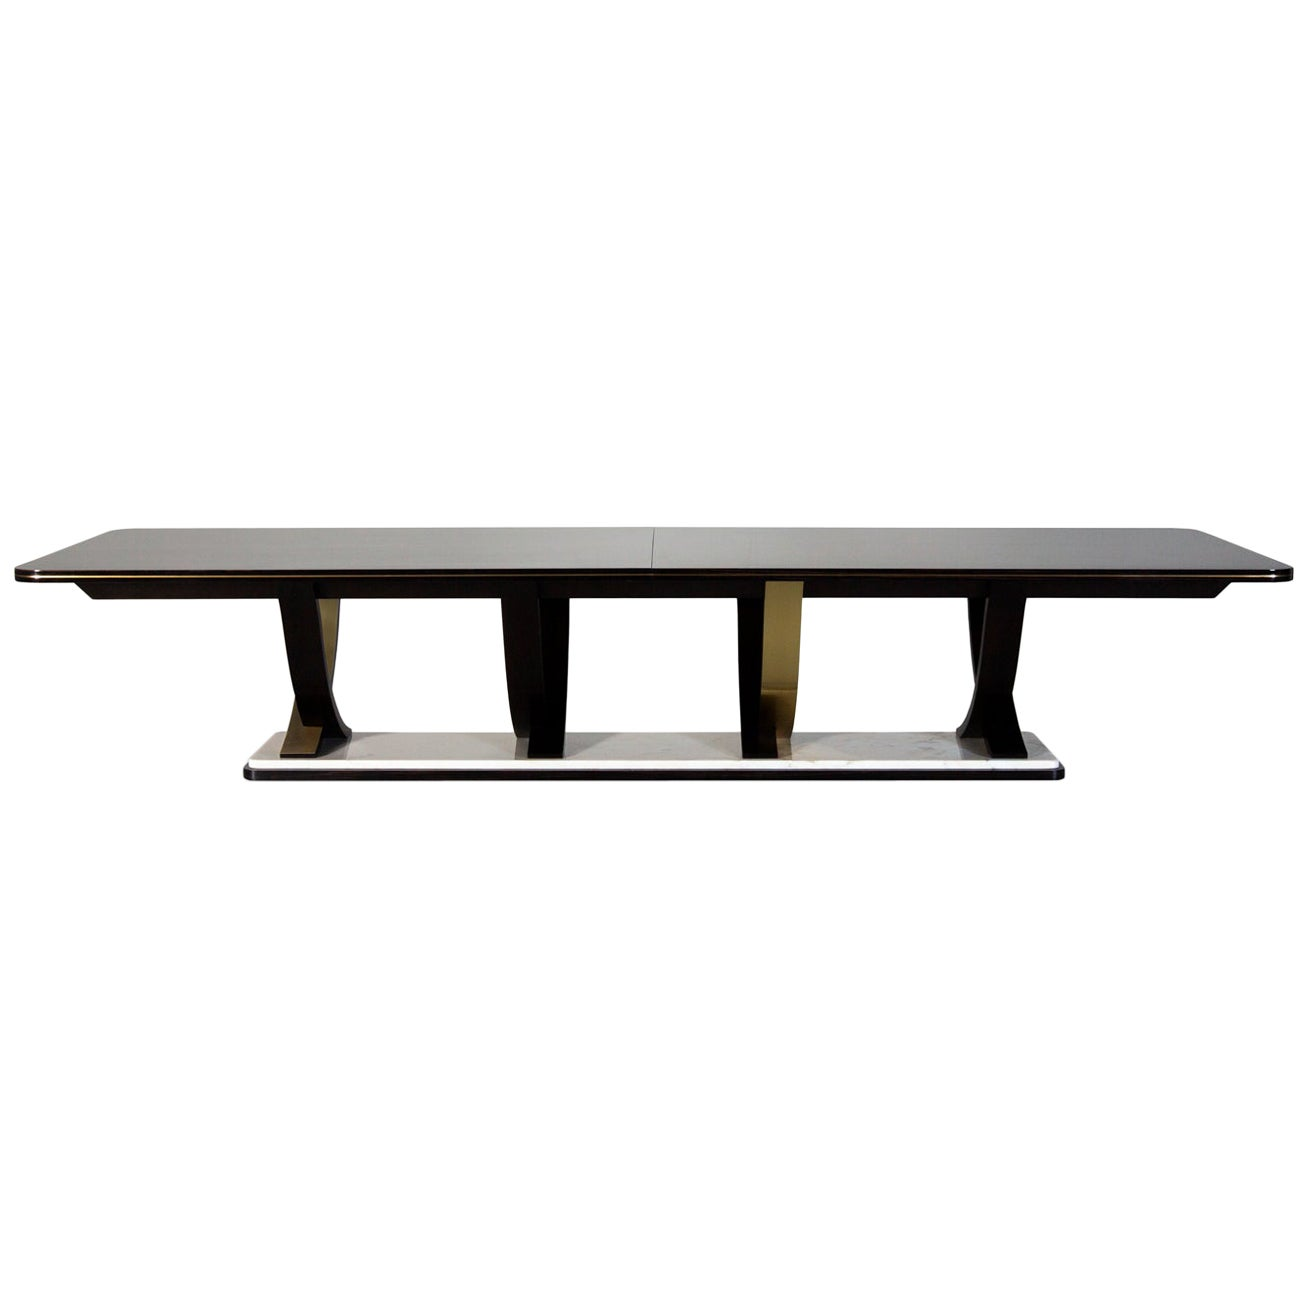 Fontaine 12-Seat Extendable Dining Table Macassar Ebony Brass Calacatta Bianco